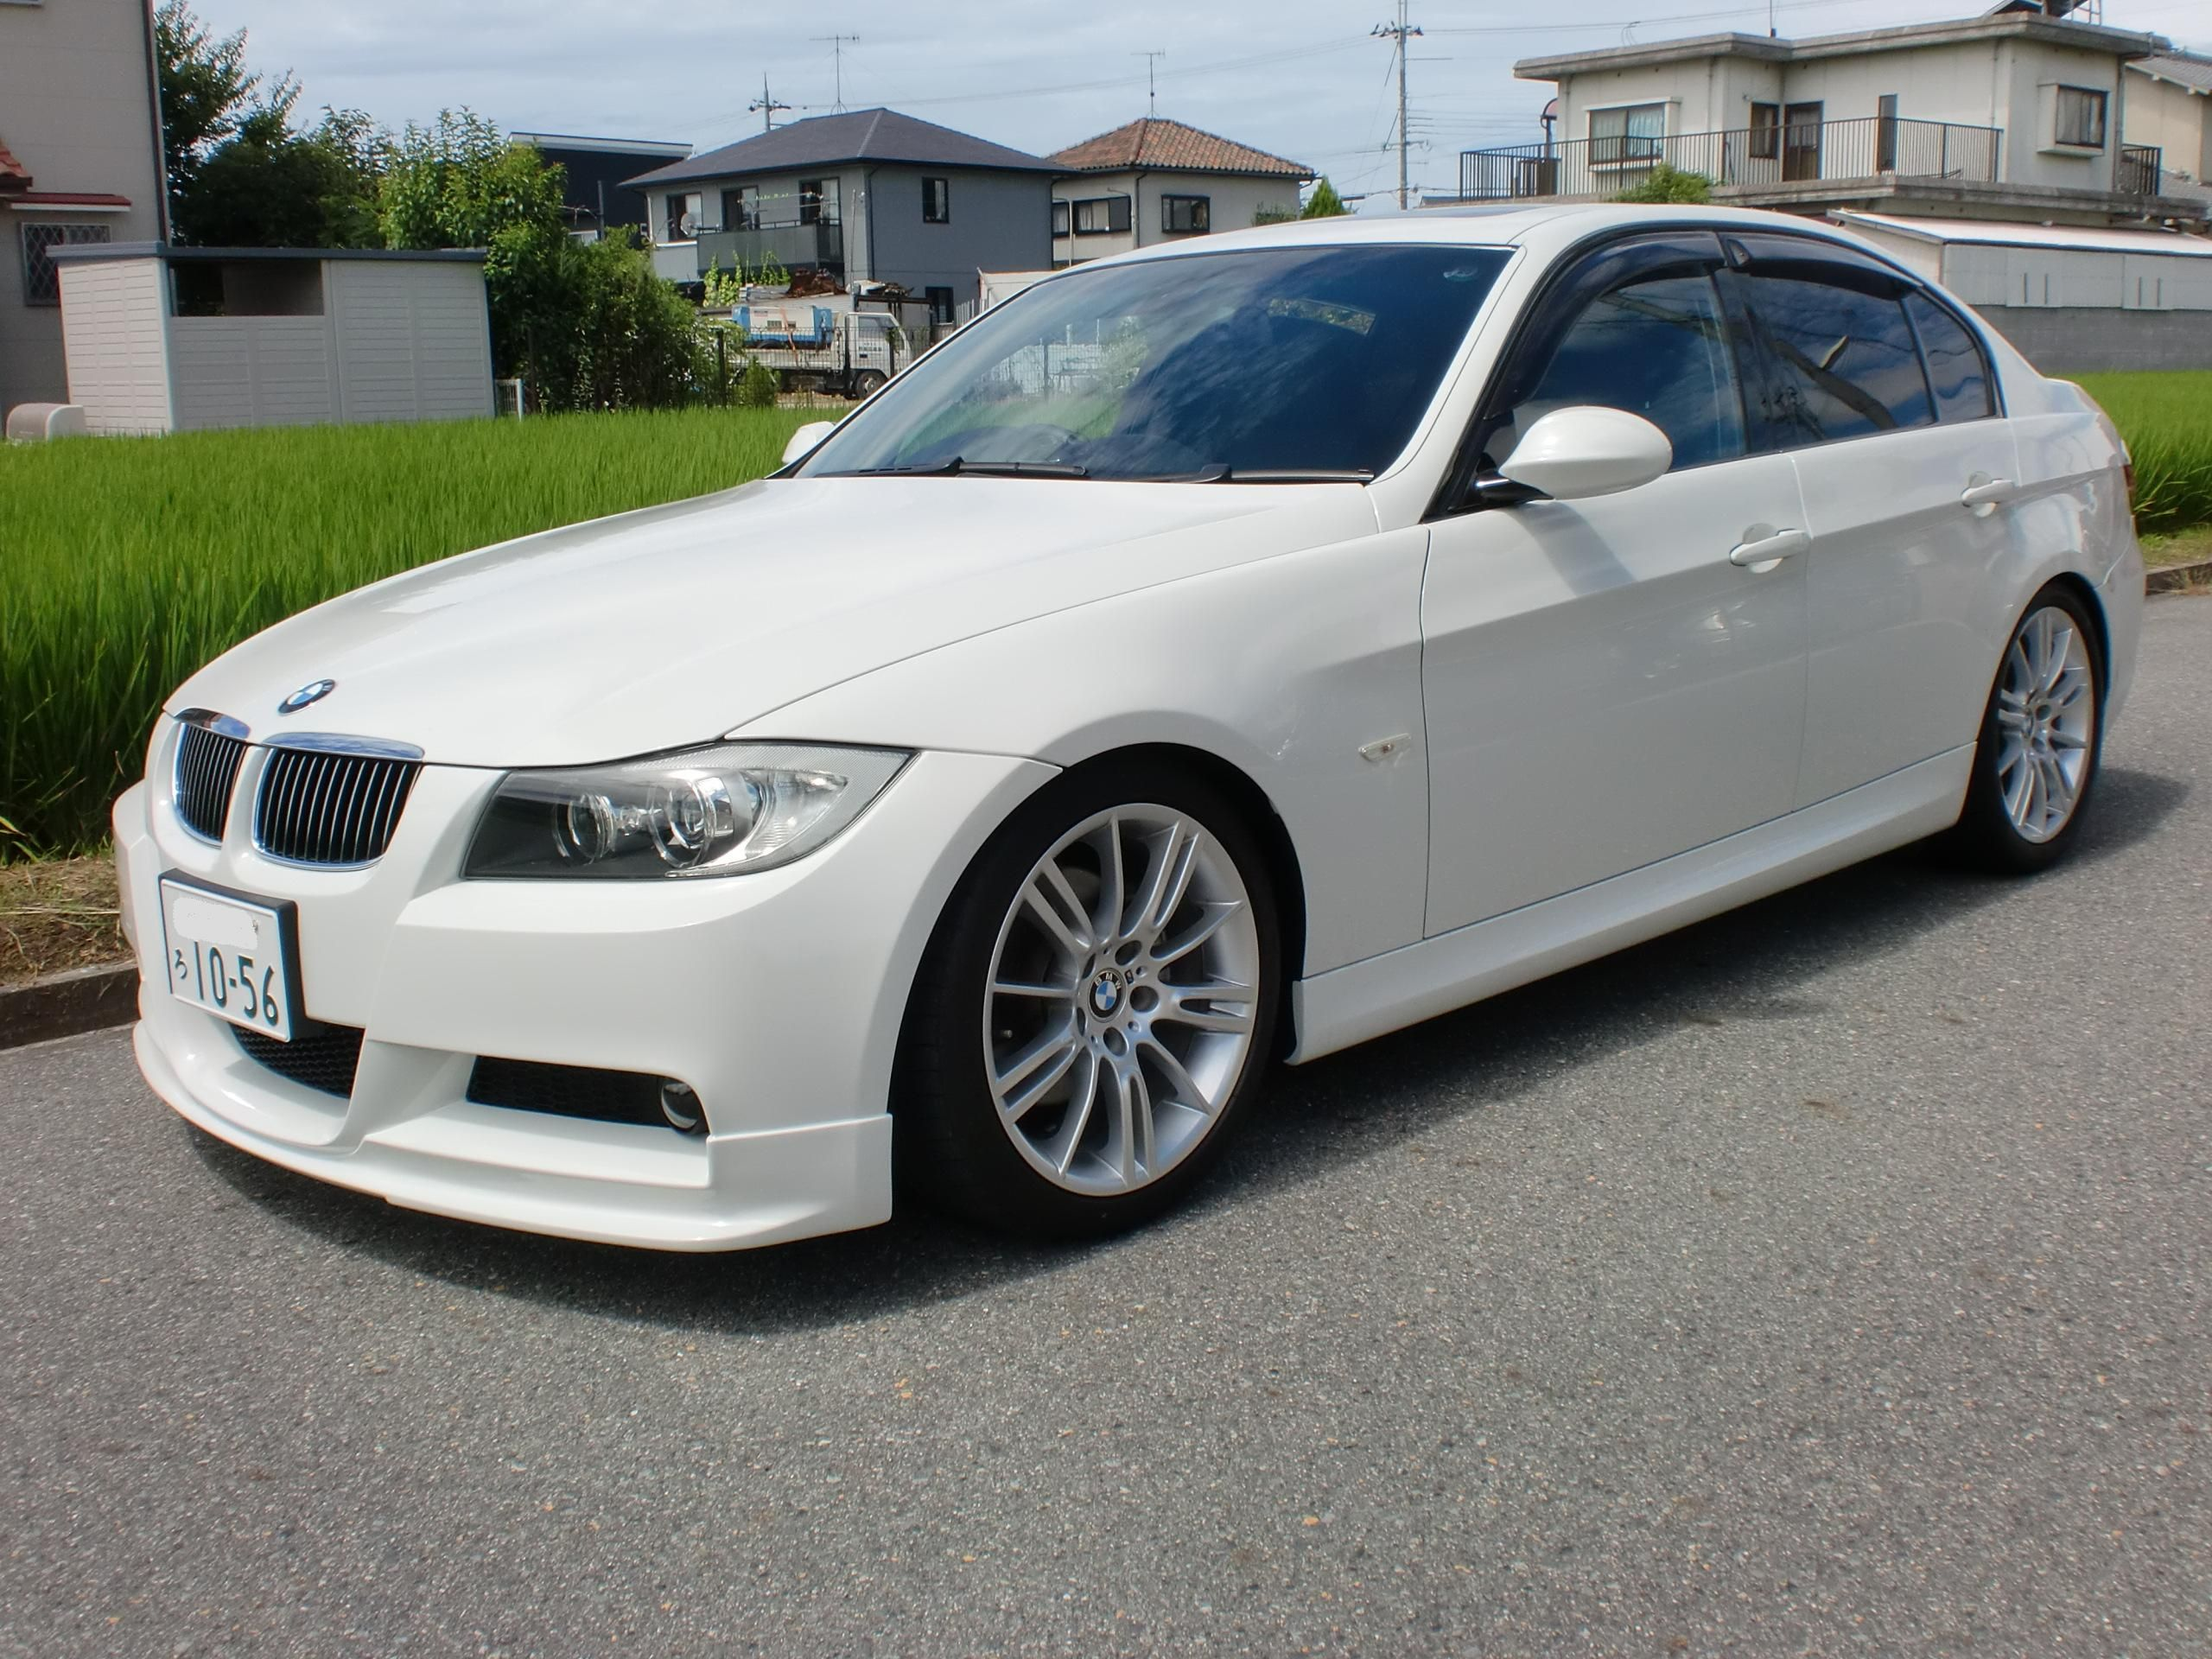 2008 BMW 325i (E90) Cars Pinterest BMW, Cars and